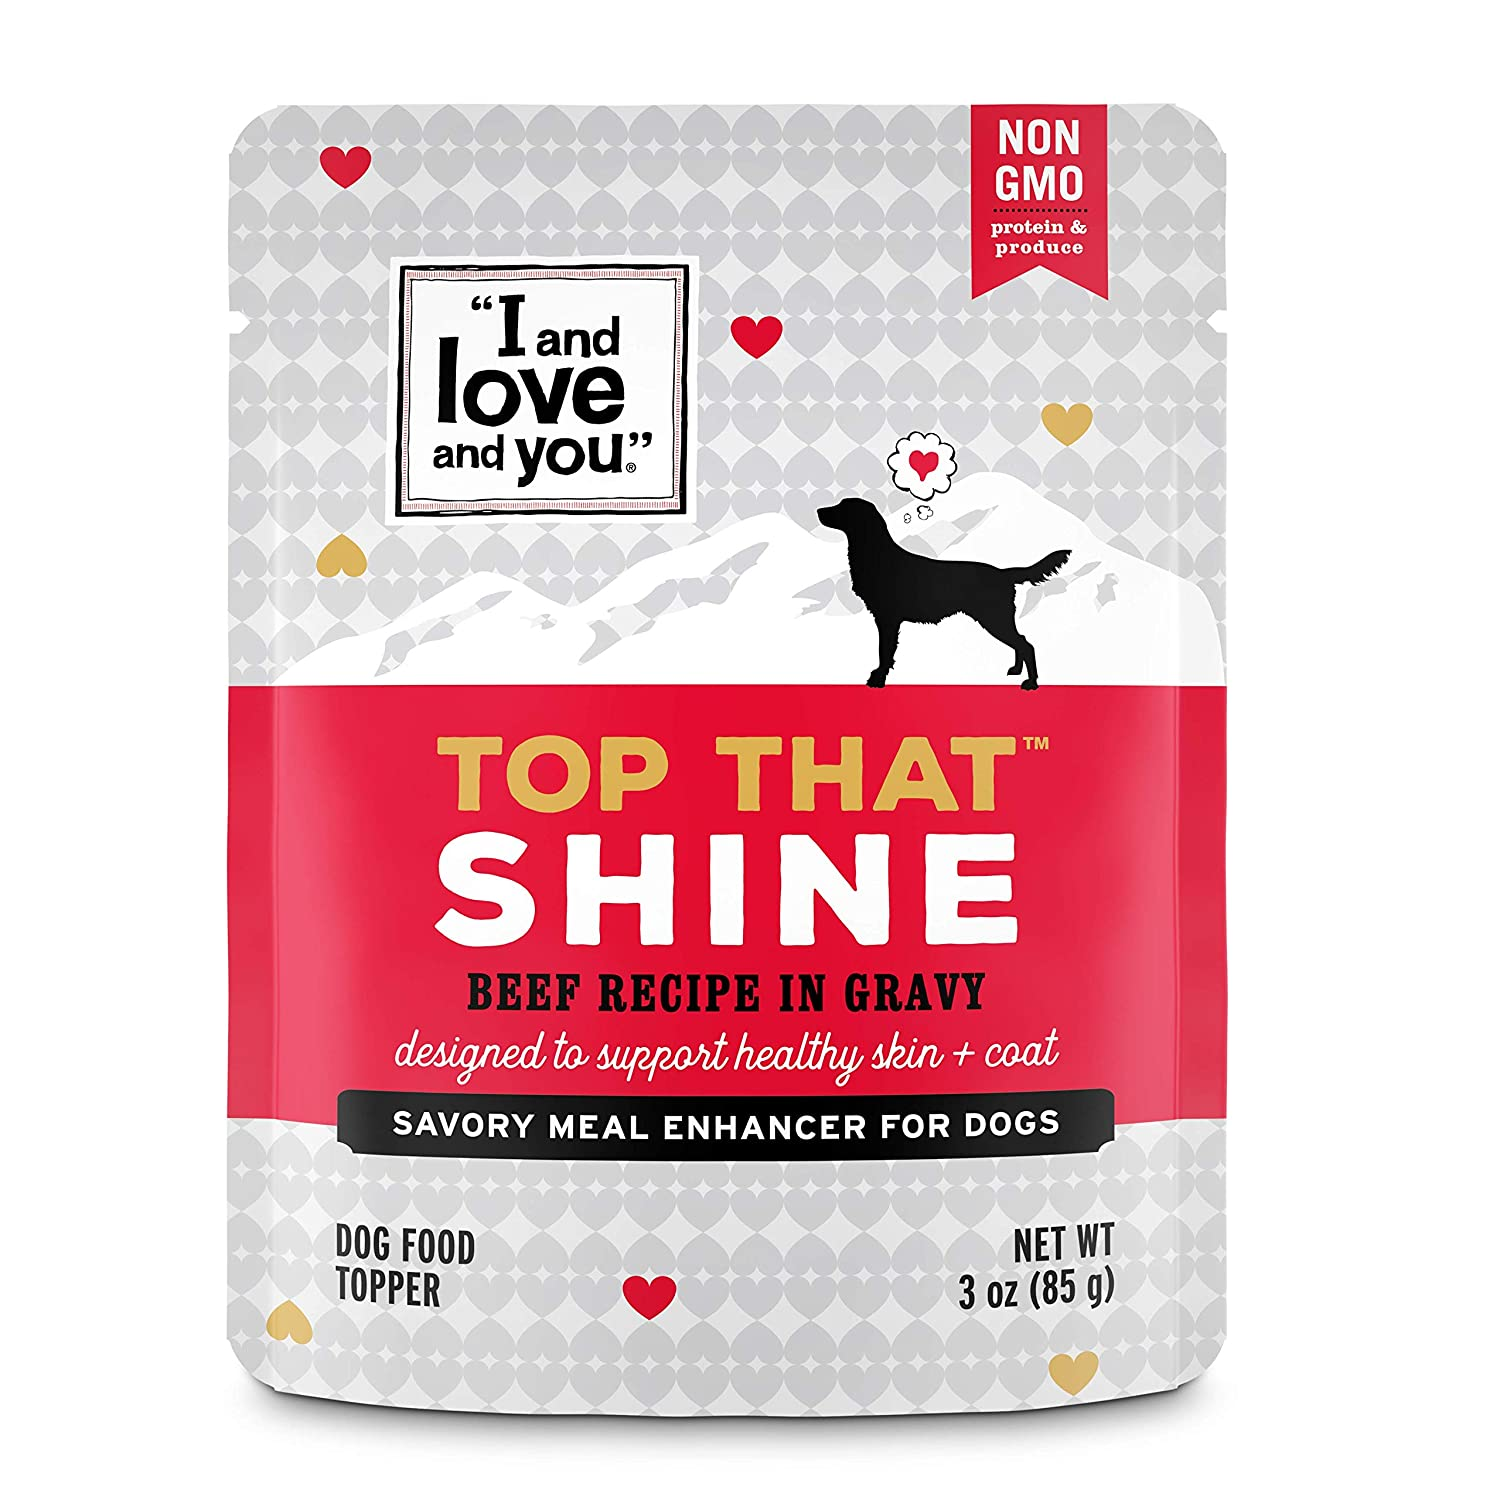 I and love and you Top That Meal Enhancer Grain Free Wet Dog Food Topper Variety of Flavors